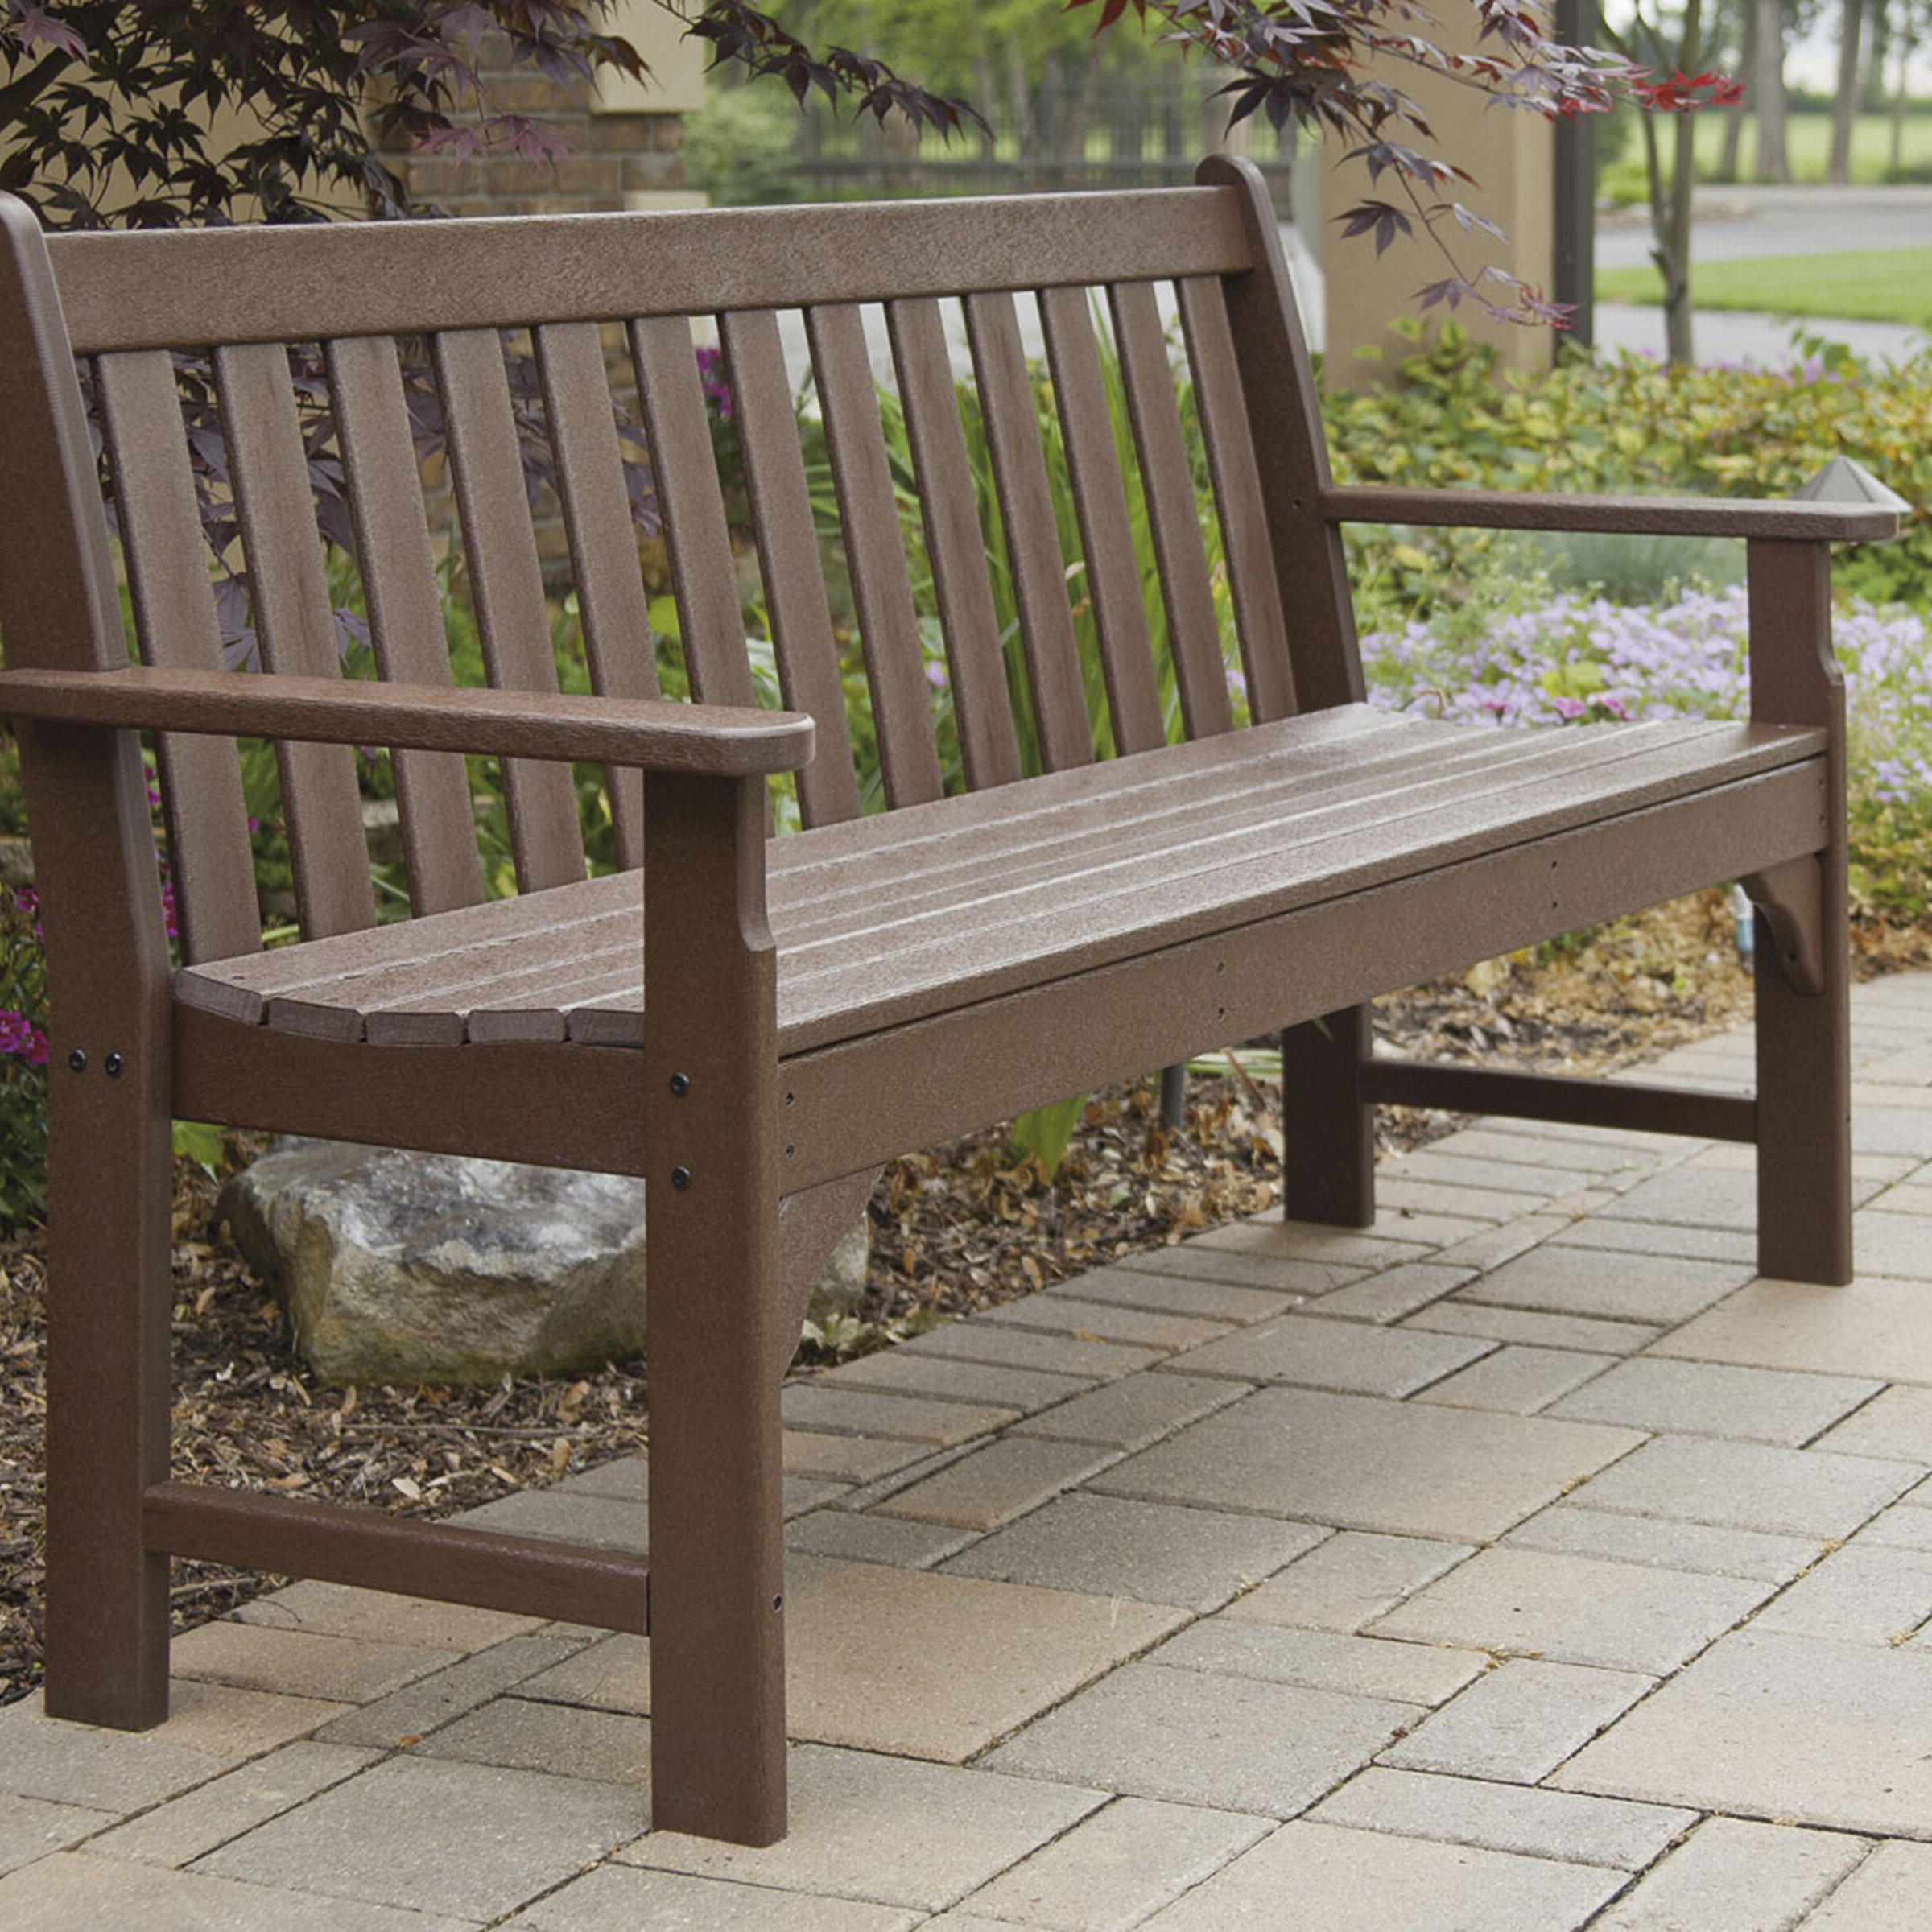 Preferred Vineyard Plastic Garden Bench Pertaining To Alfon Wood Garden Benches (View 13 of 30)